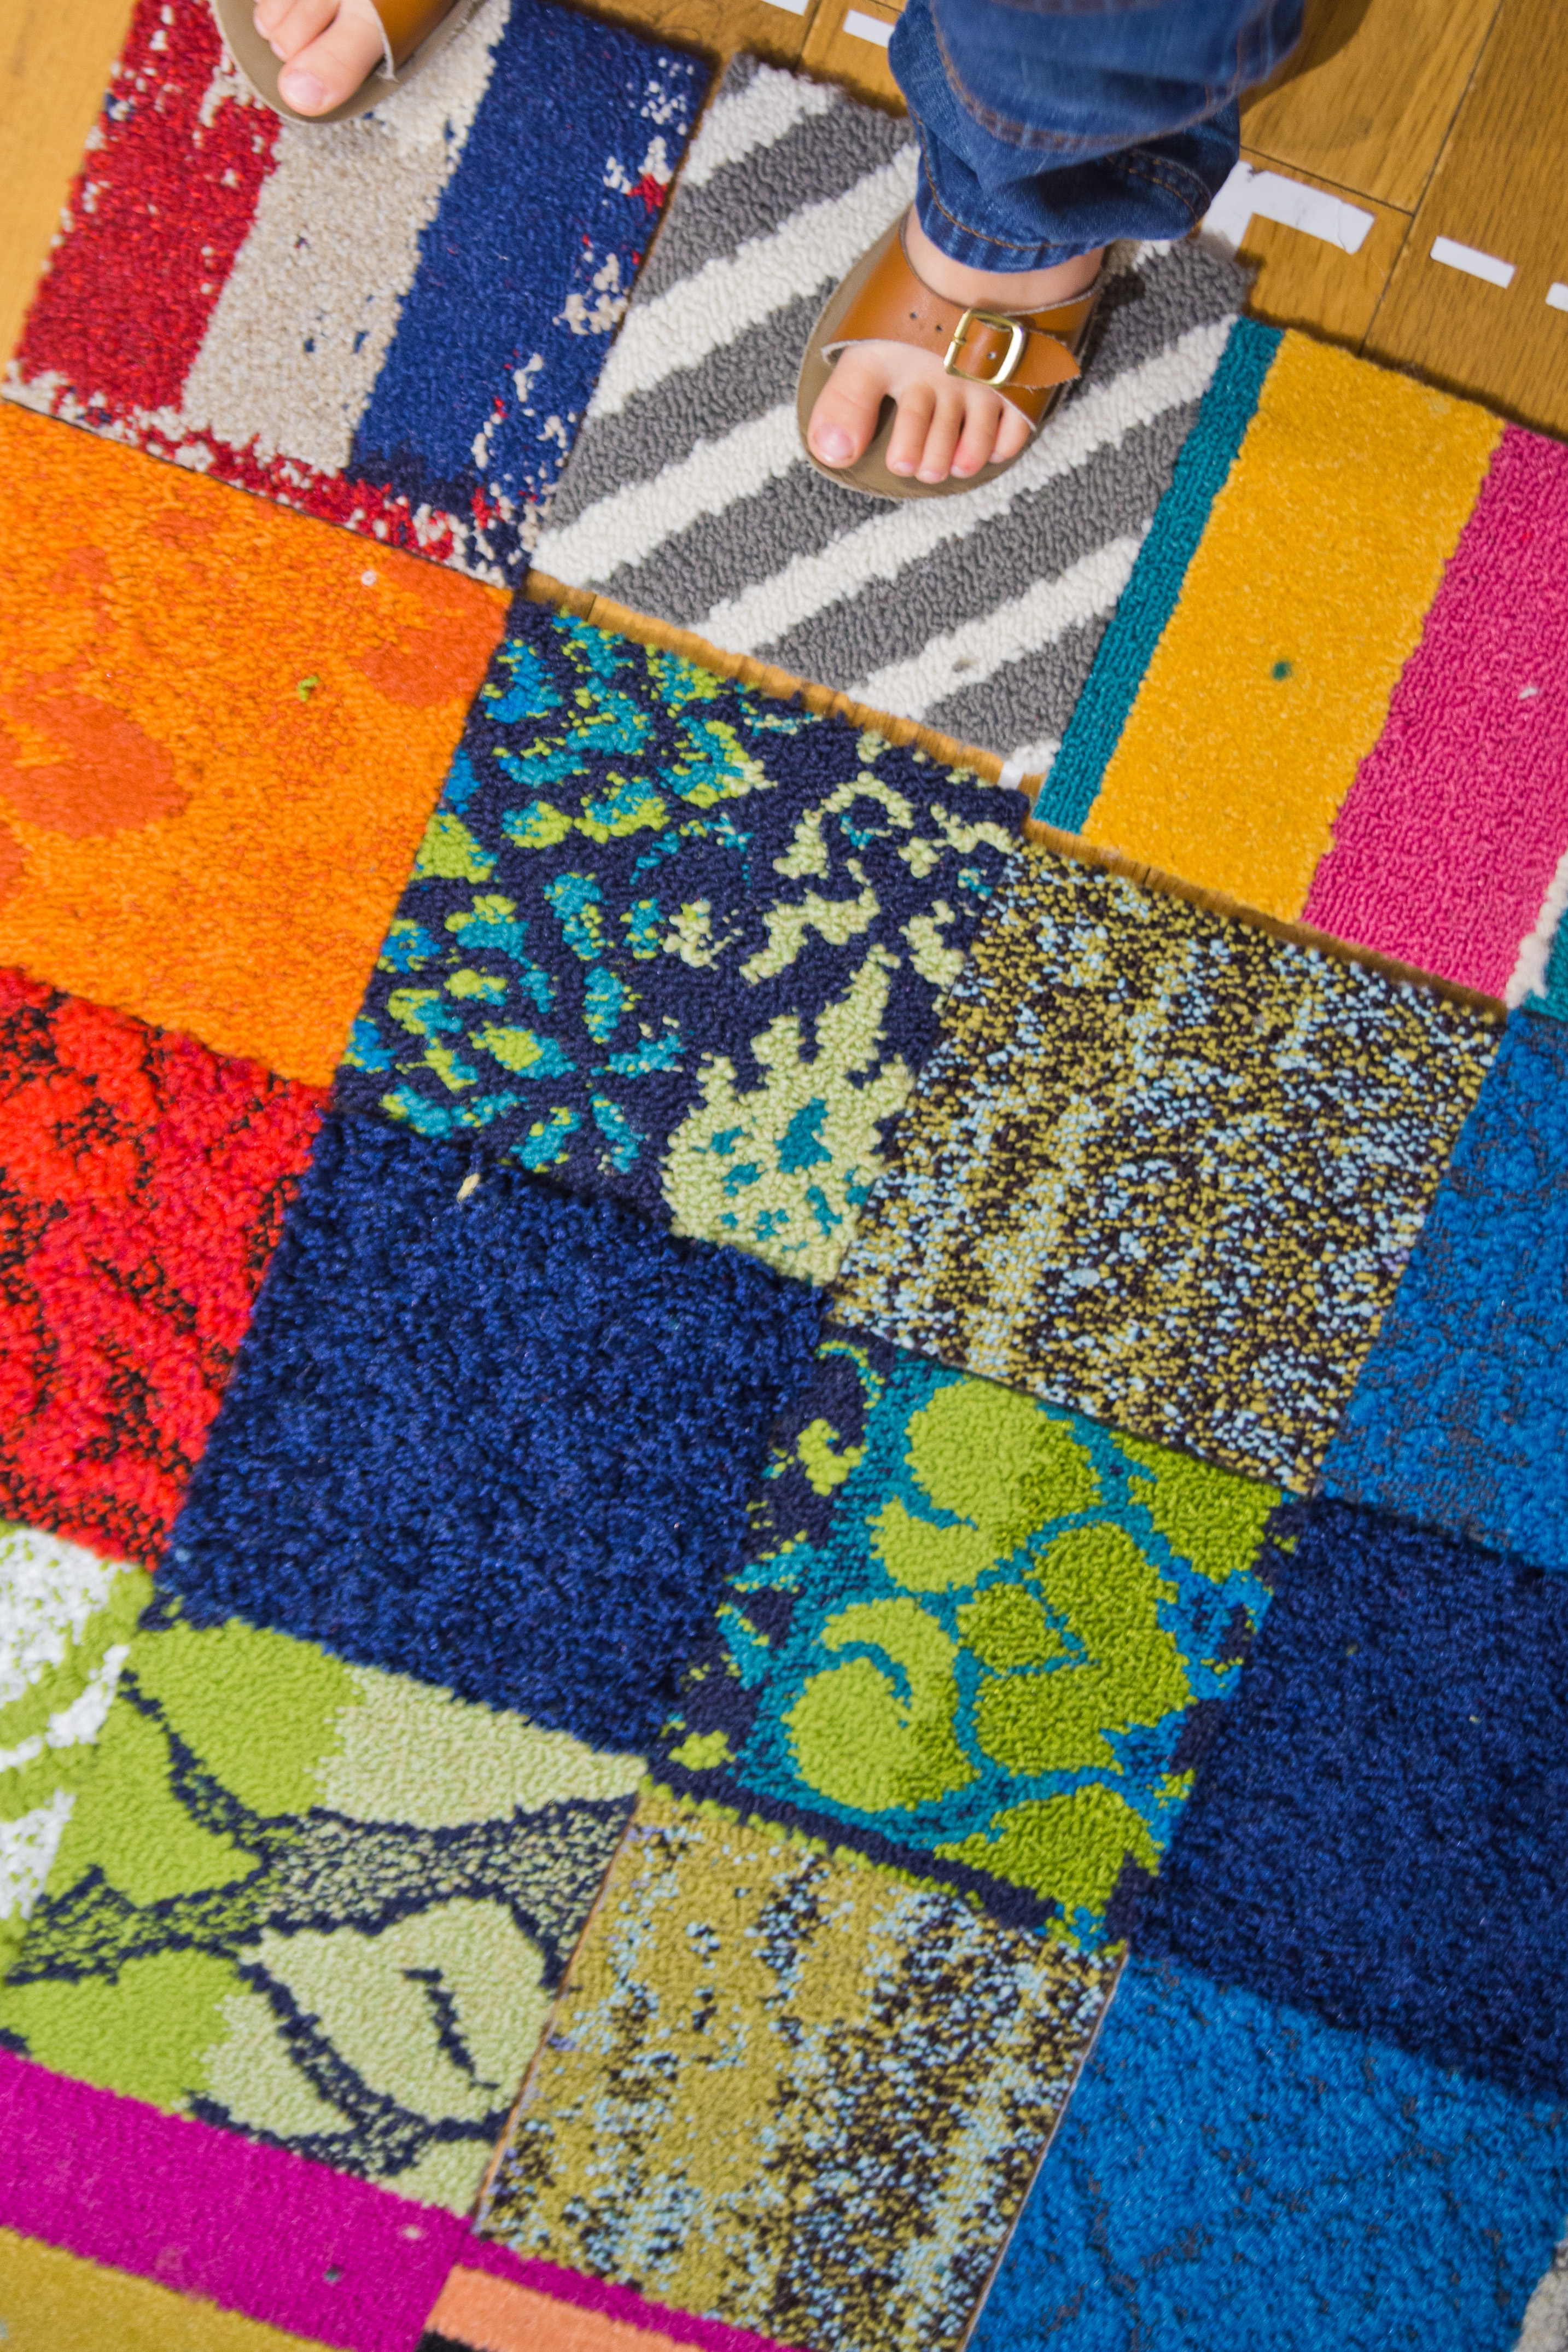 Custom Rug Designs With FLOR